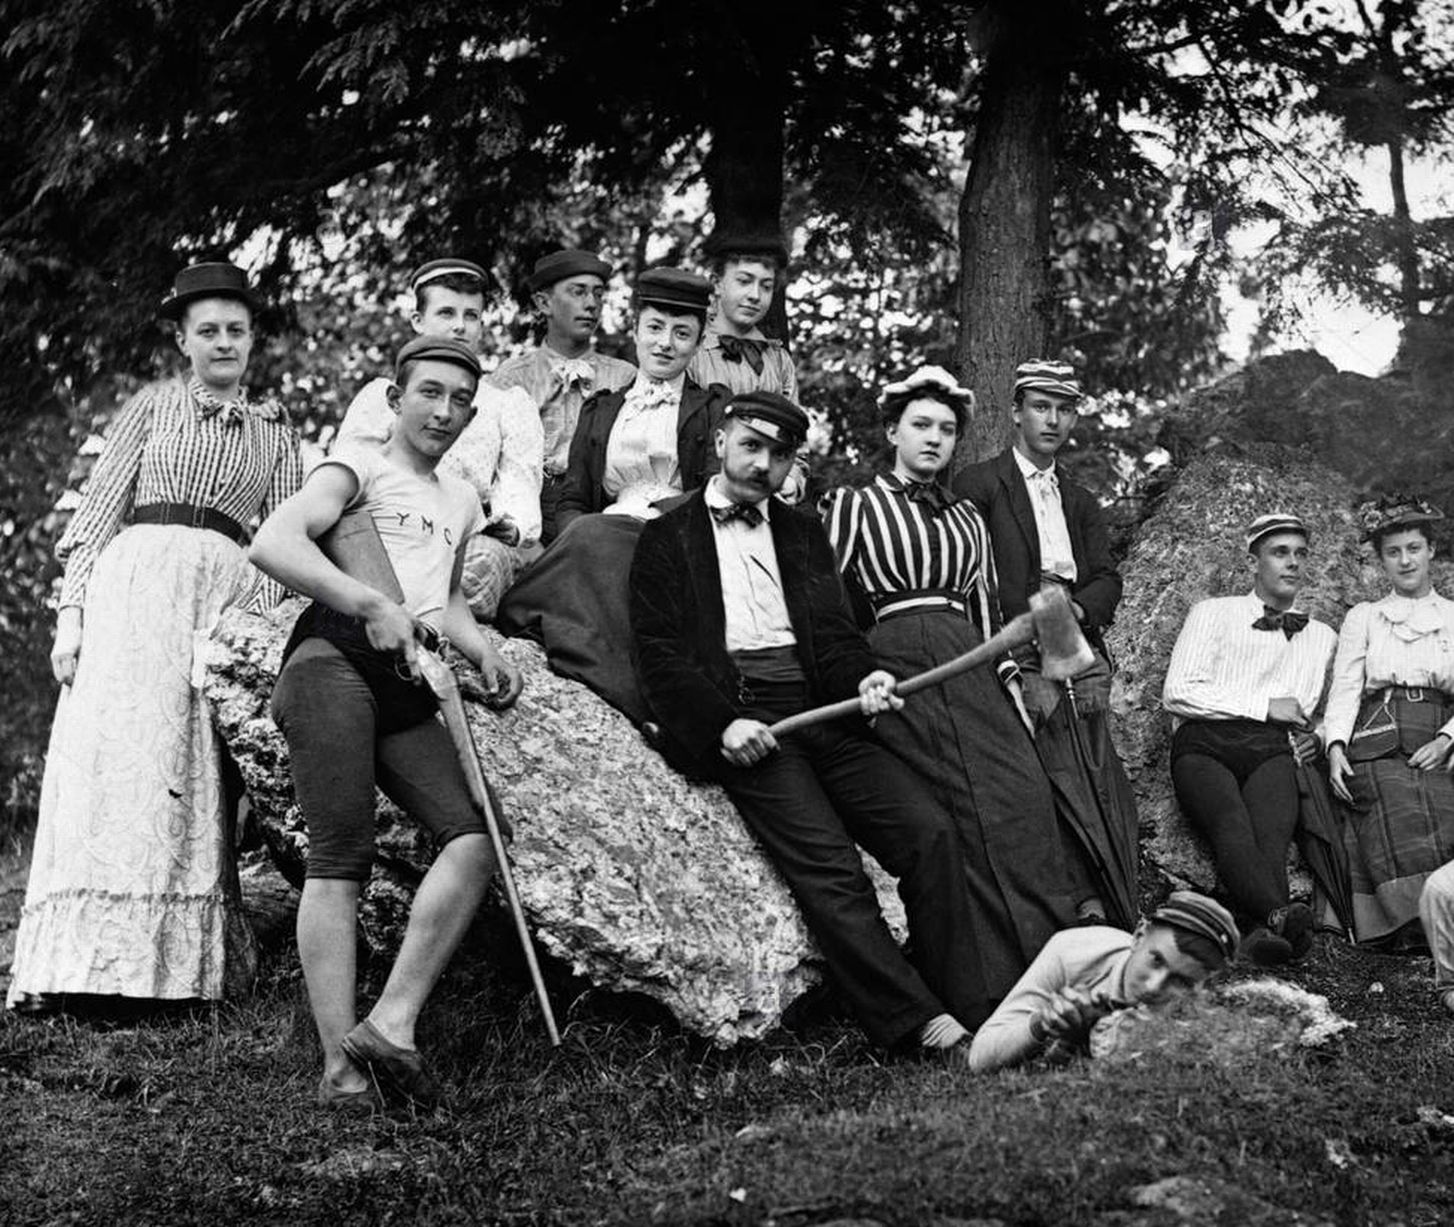 Teenagers are on a recreational outing in 1900s